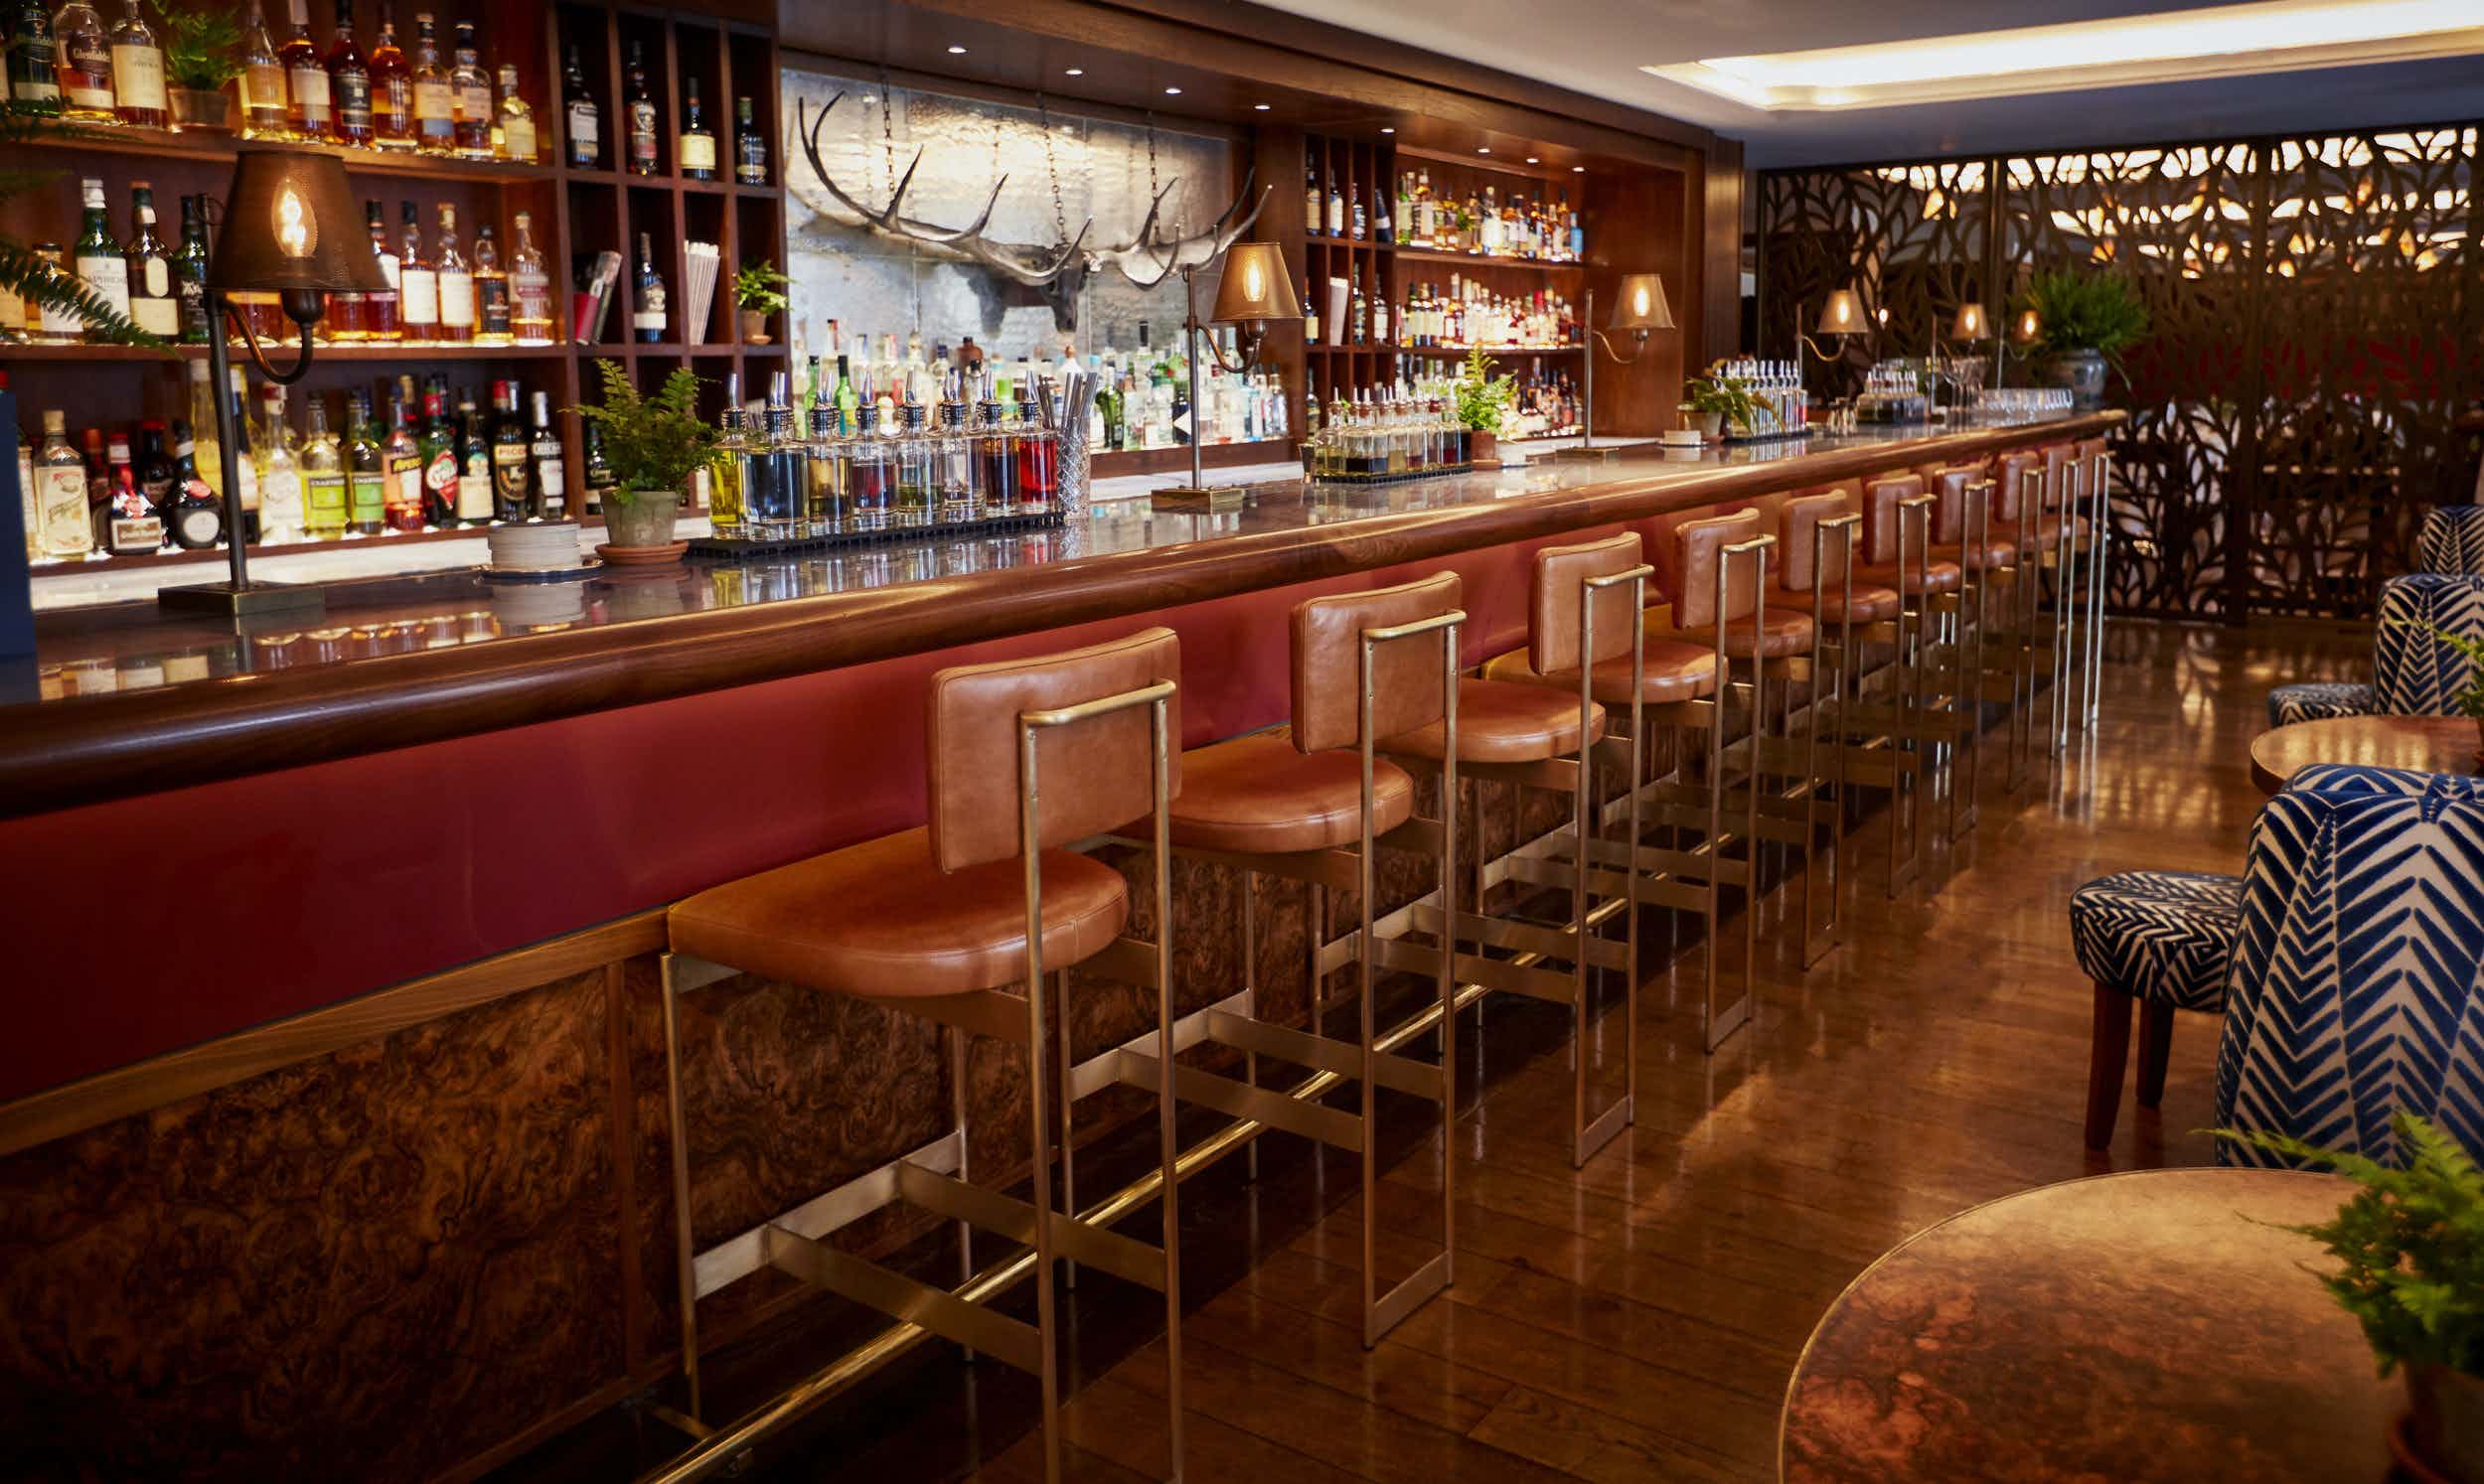 Dickie's Bar, Corrigan's Mayfair